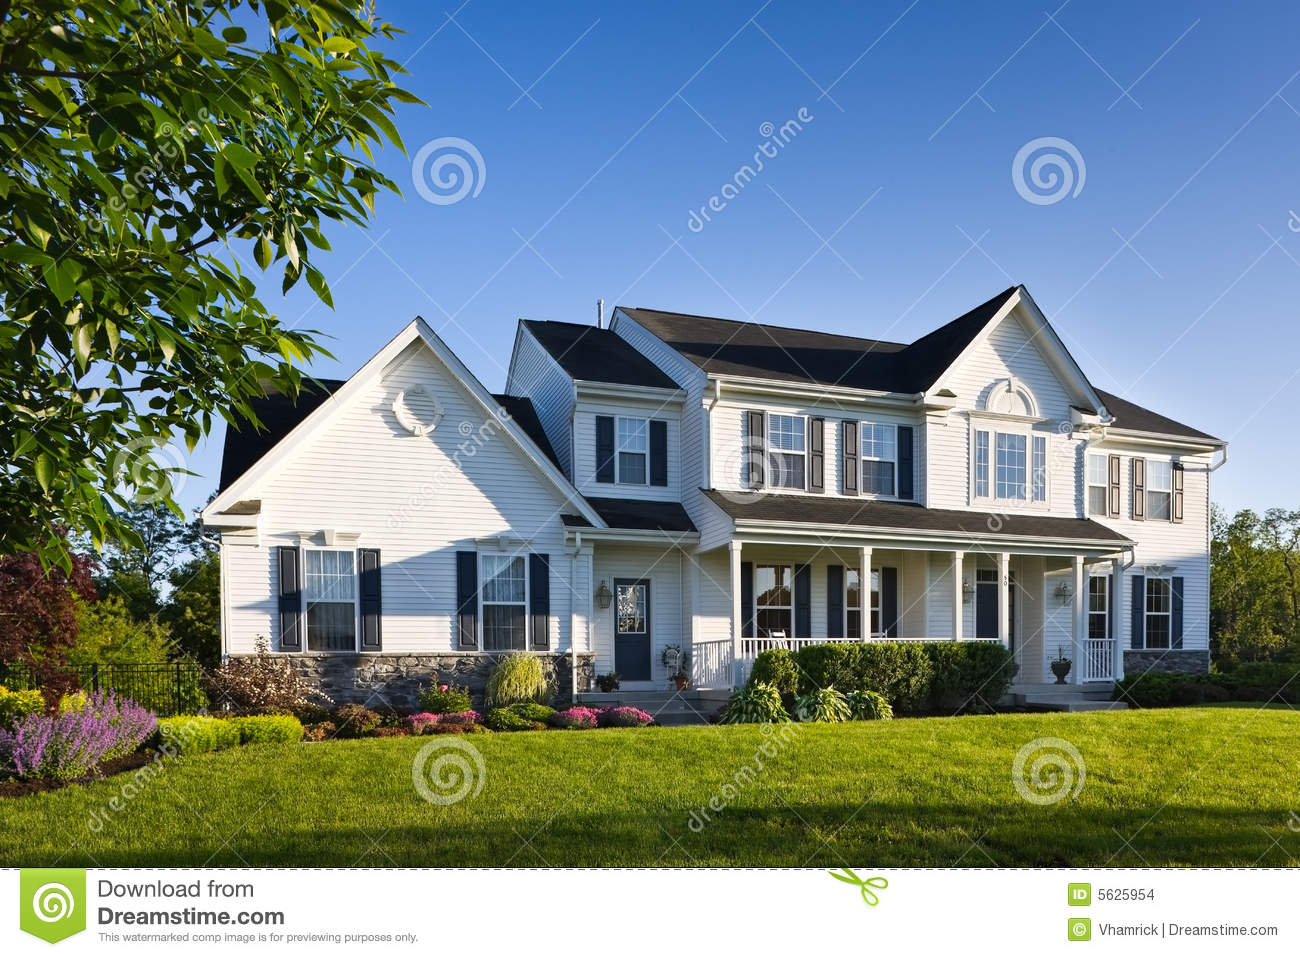 Modern Suburban Single Family Home Stock Images - Image ...